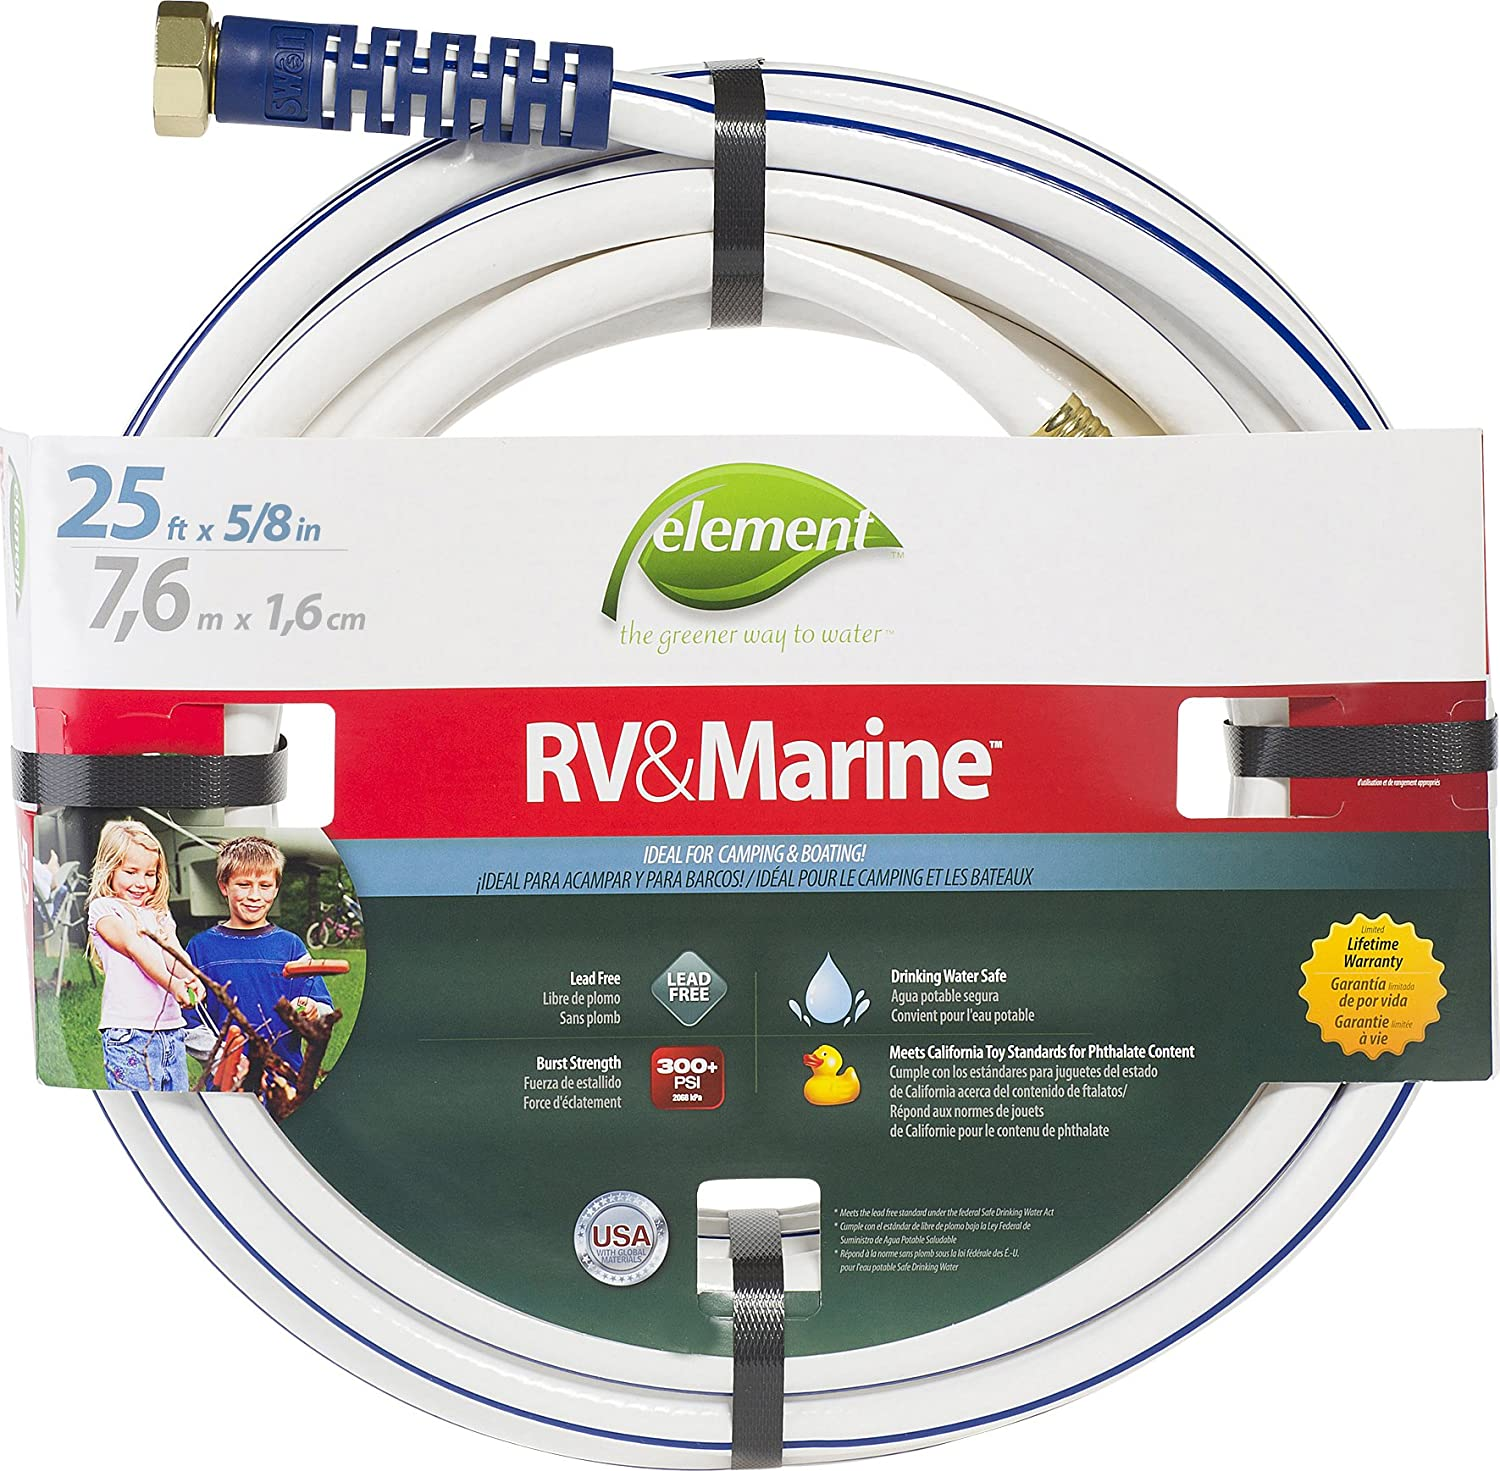 Swan Products ELMRV58025 Element RV & Marine Camping and Boating Water Hose 25 ft. x 5/8 in. , White